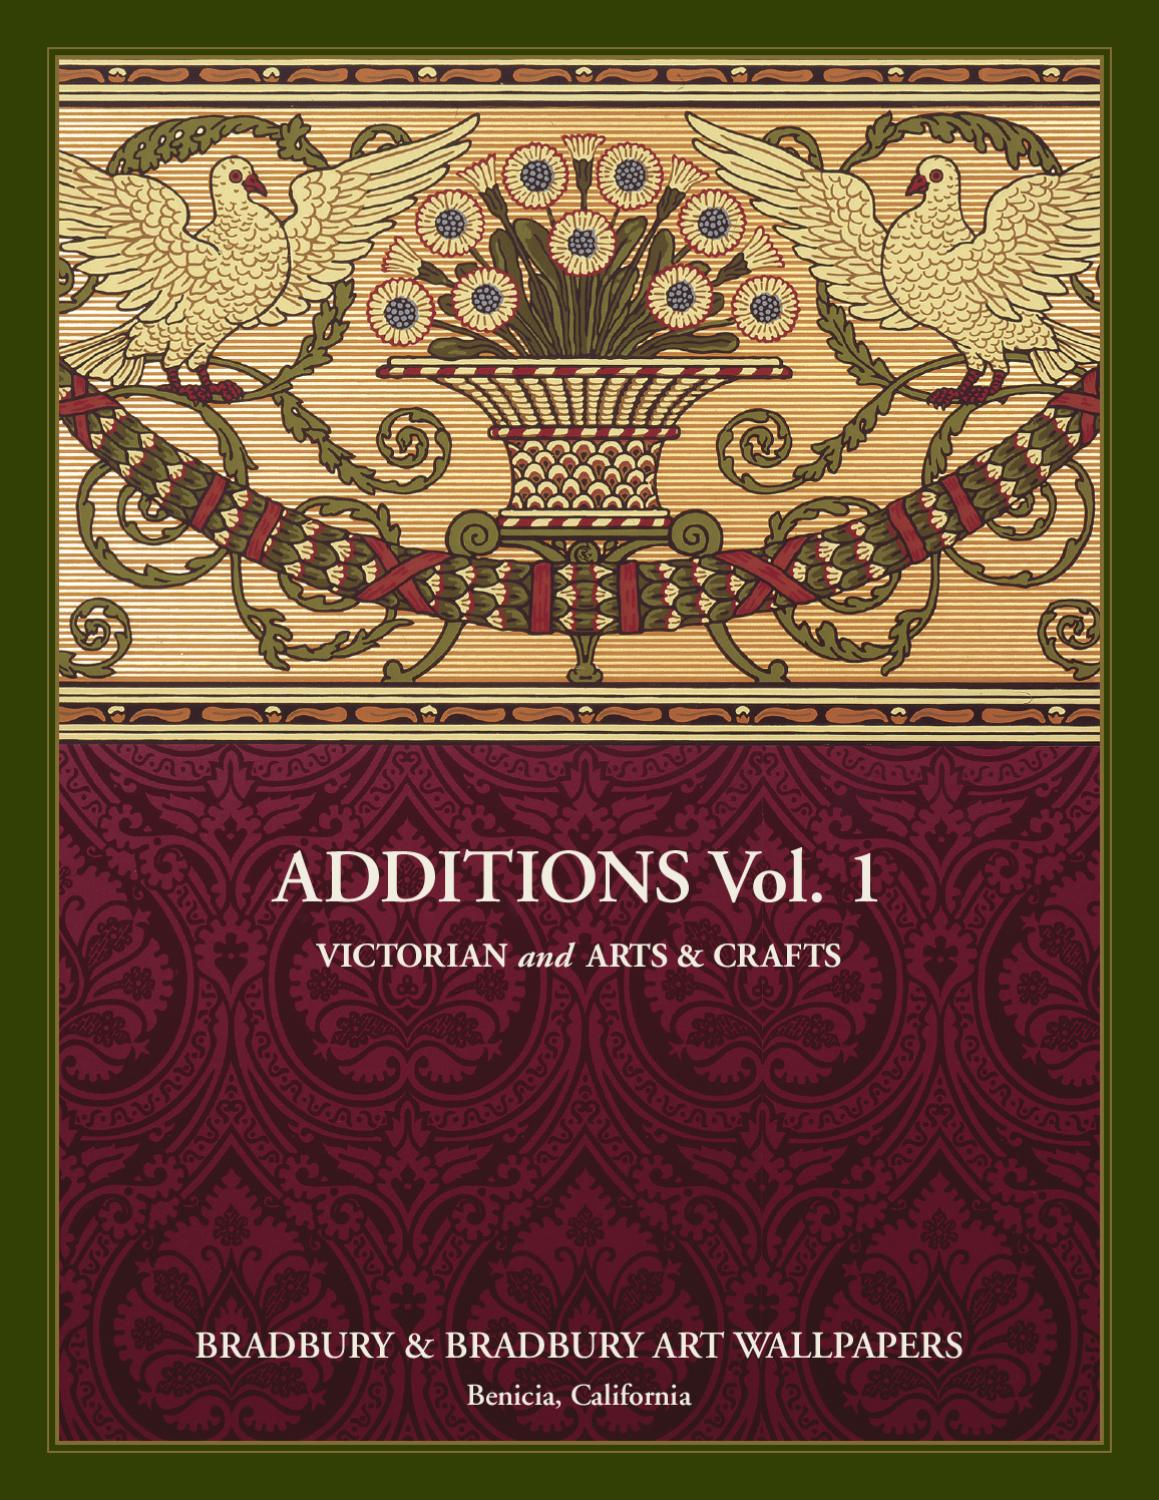 Additions volume 1 victorian and arts crafts by - Bradbury and bradbury frieze ...